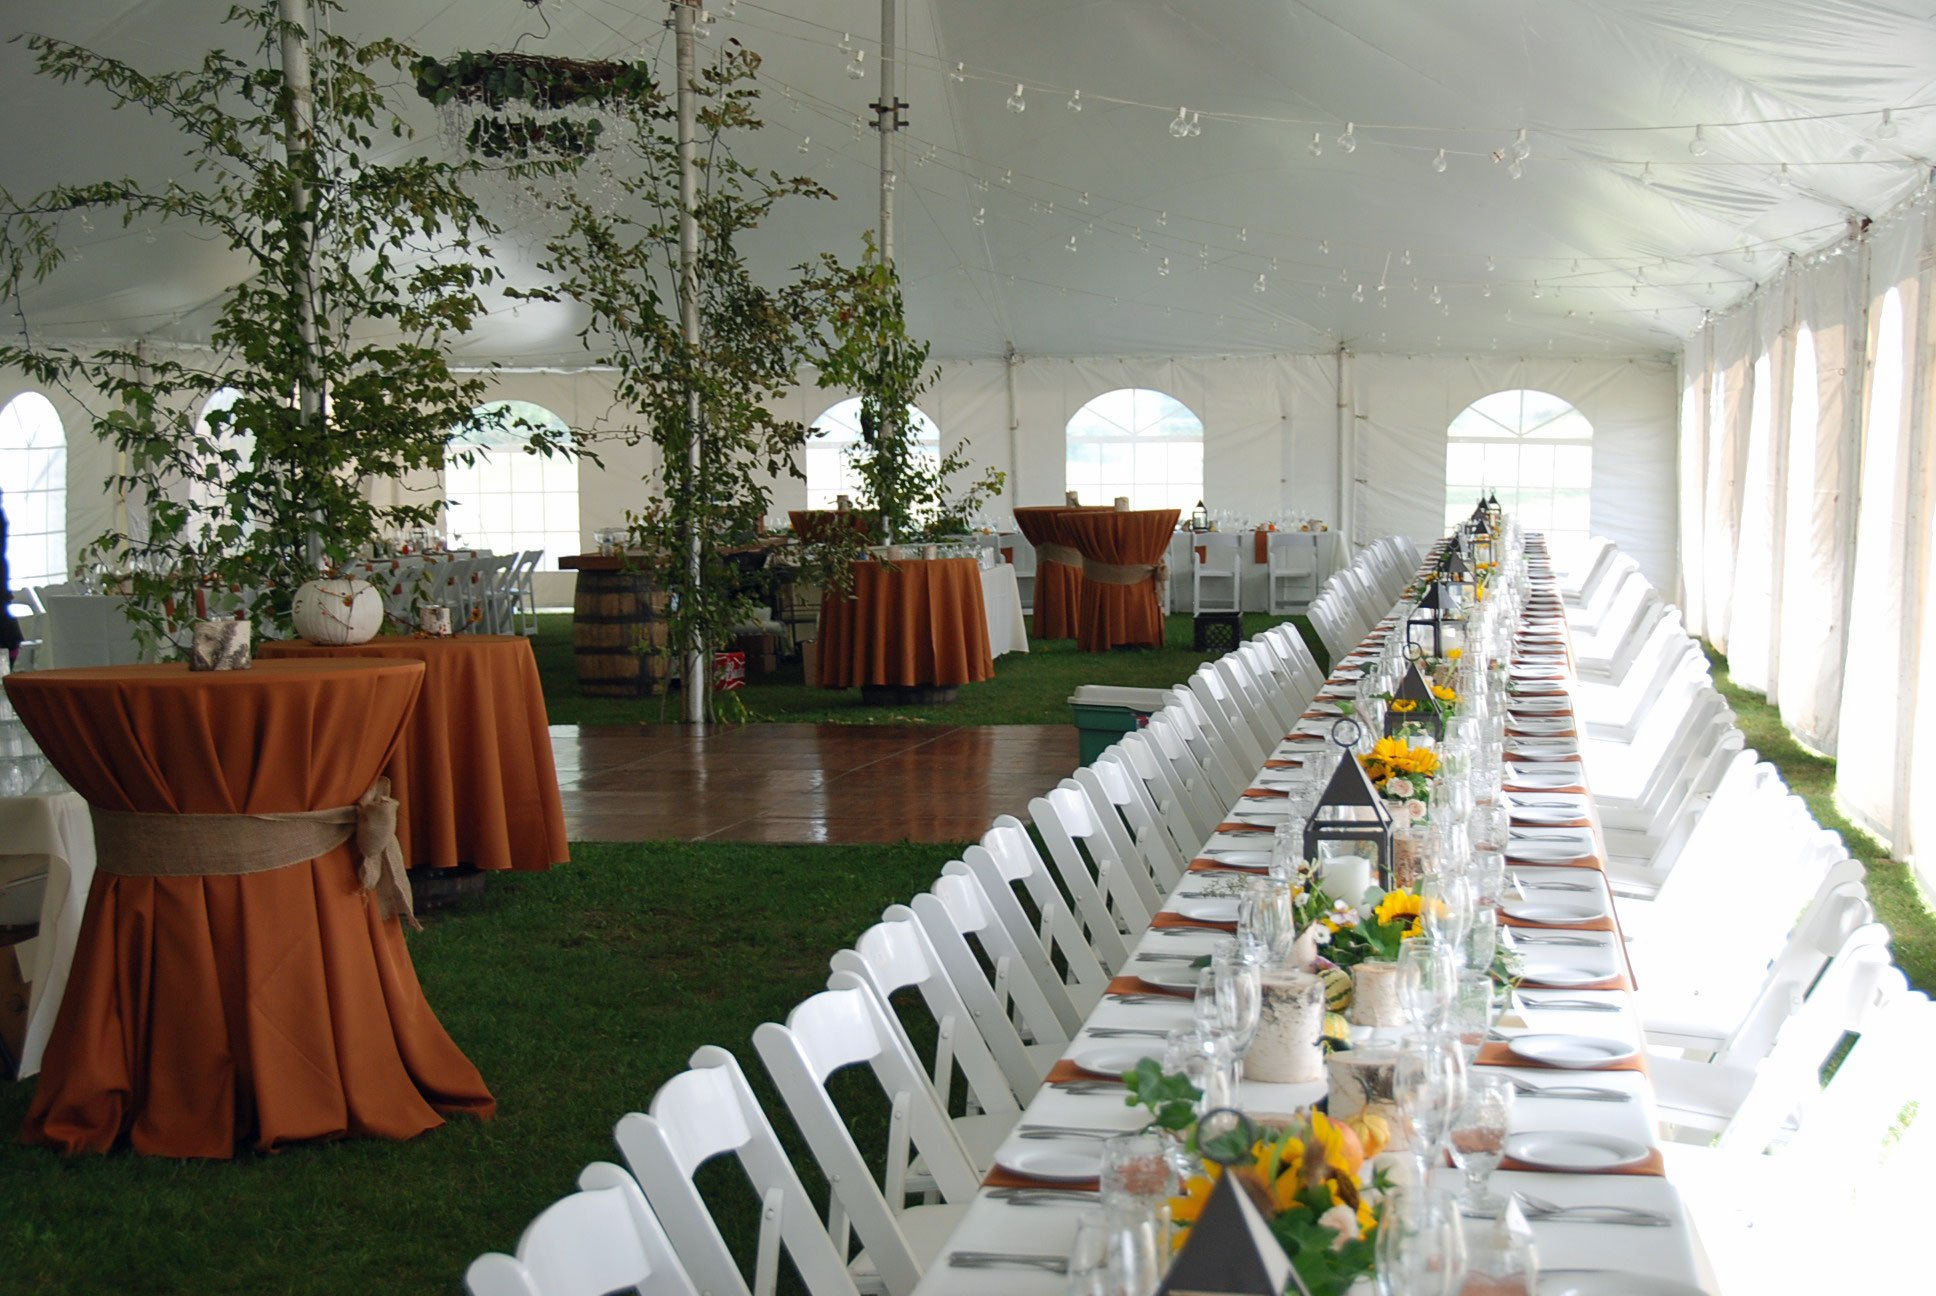 Tent-interior-ling-table-and-bar